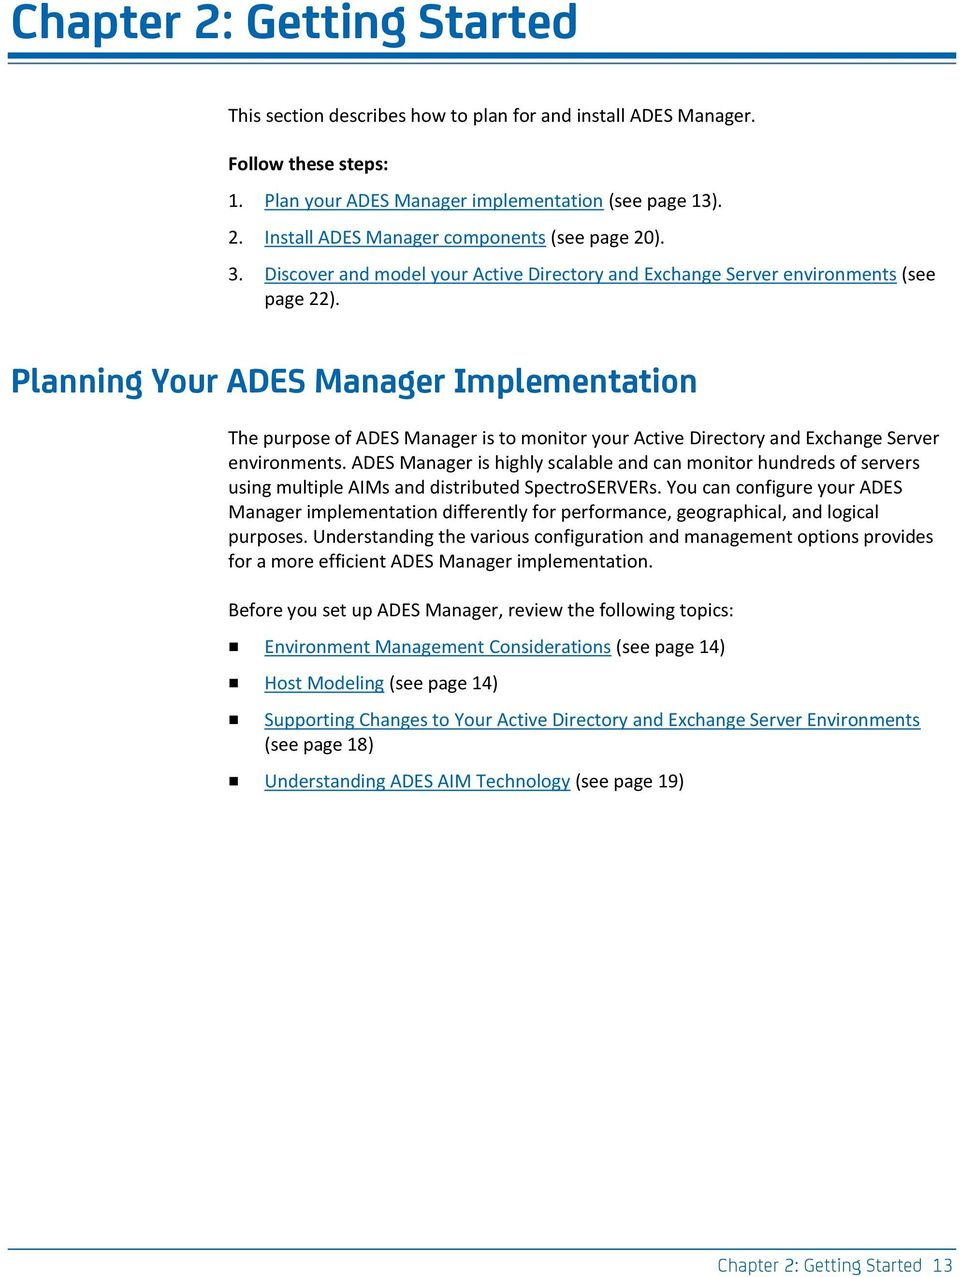 Planning Your ADES Manager Implementation The purpose of ADES Manager is to monitor your Active Directory and Exchange Server environments.